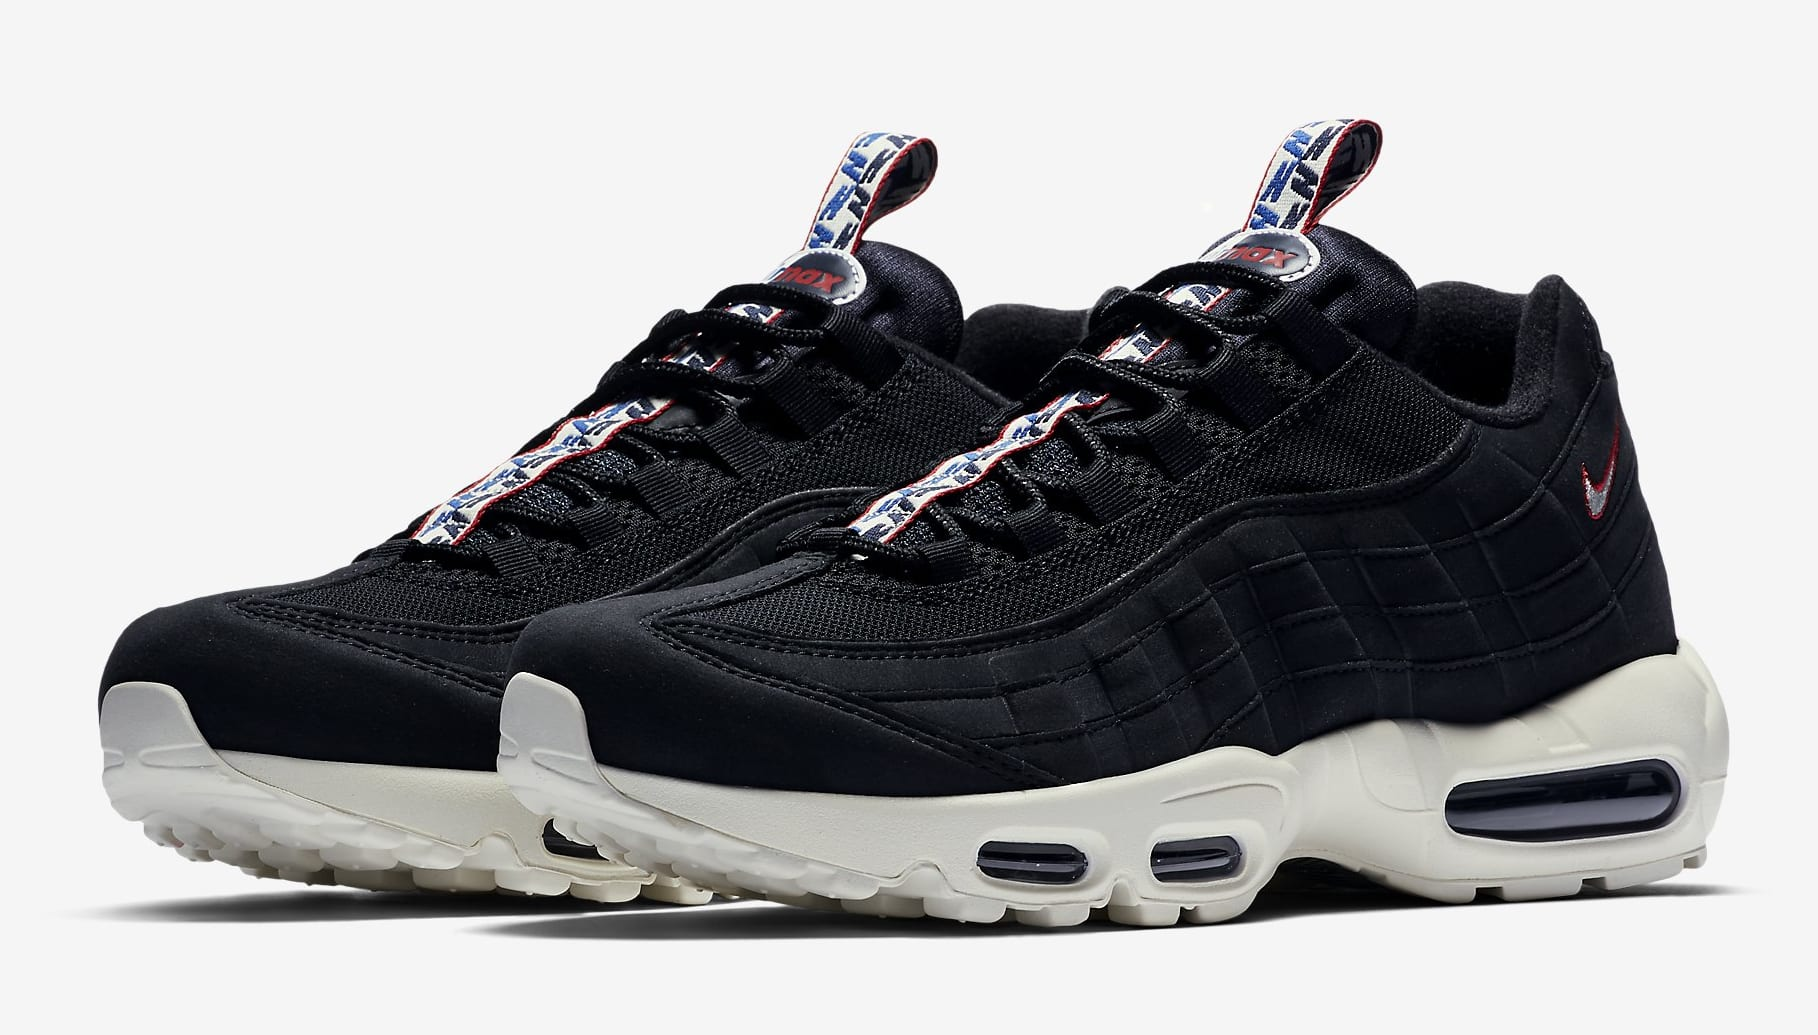 lowest price 52c6f b6f10 ... Image via Nike Nike Air Max 95 Pull Tab AJ1844-002 (Pair) ...